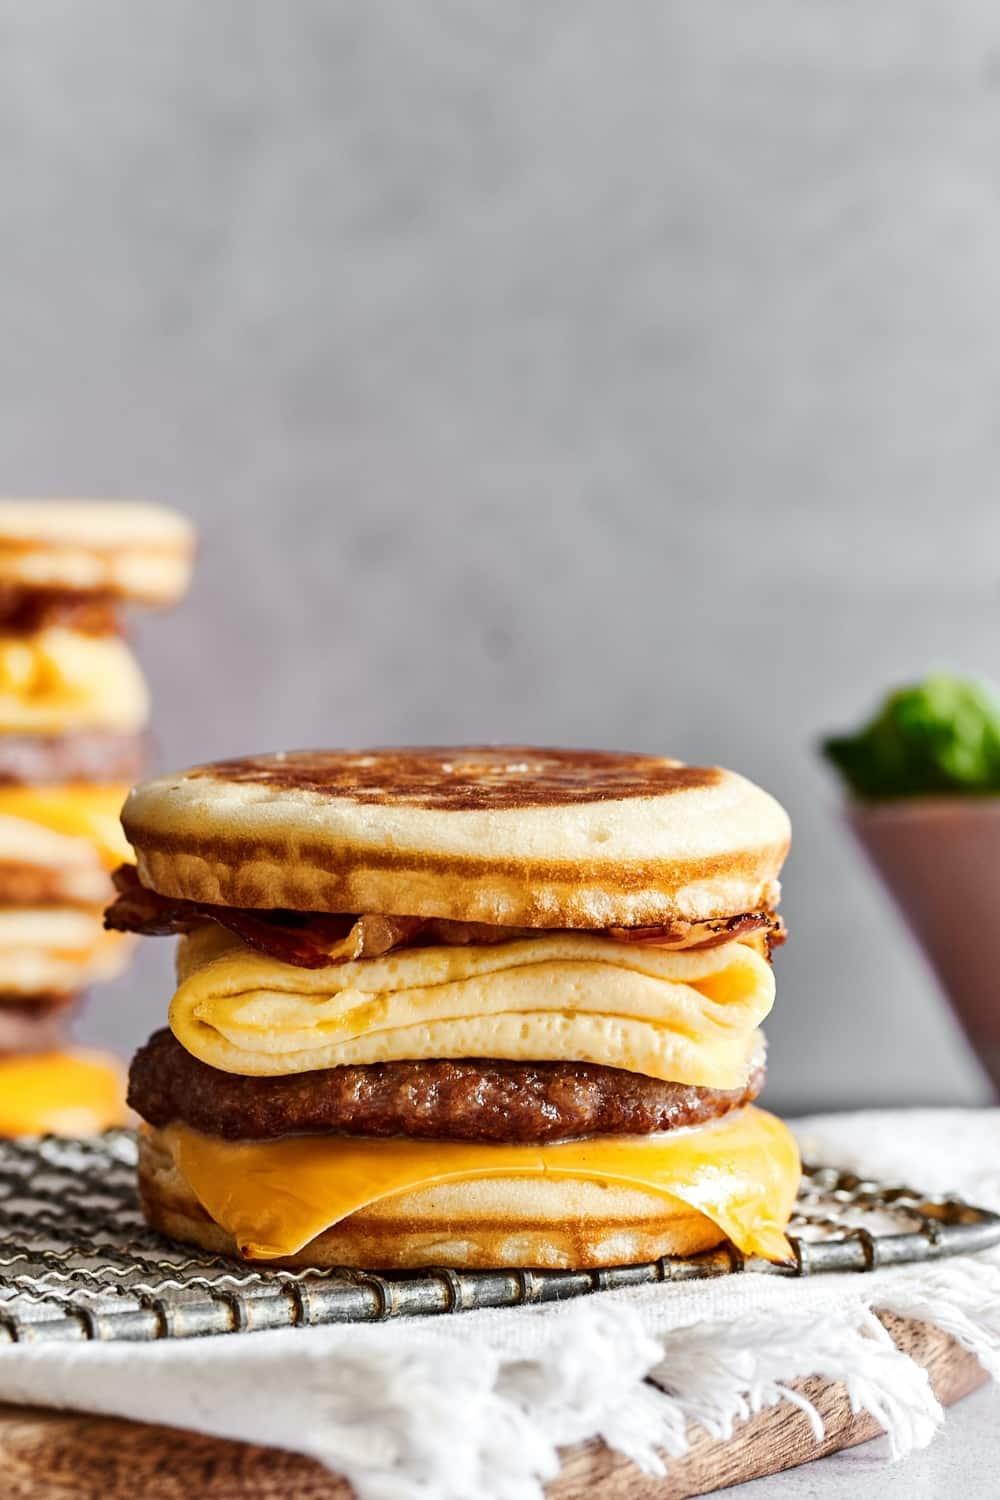 A McGriddle on a wire rack on a White tablecloth cover in a wooden board that is set on a white counter.